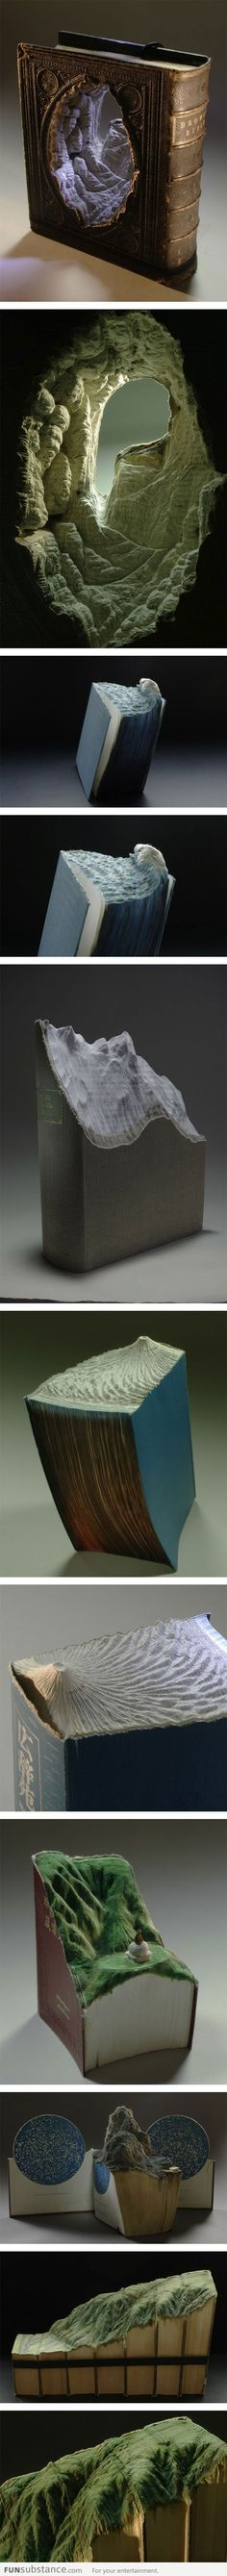 Carved Book Landscapes